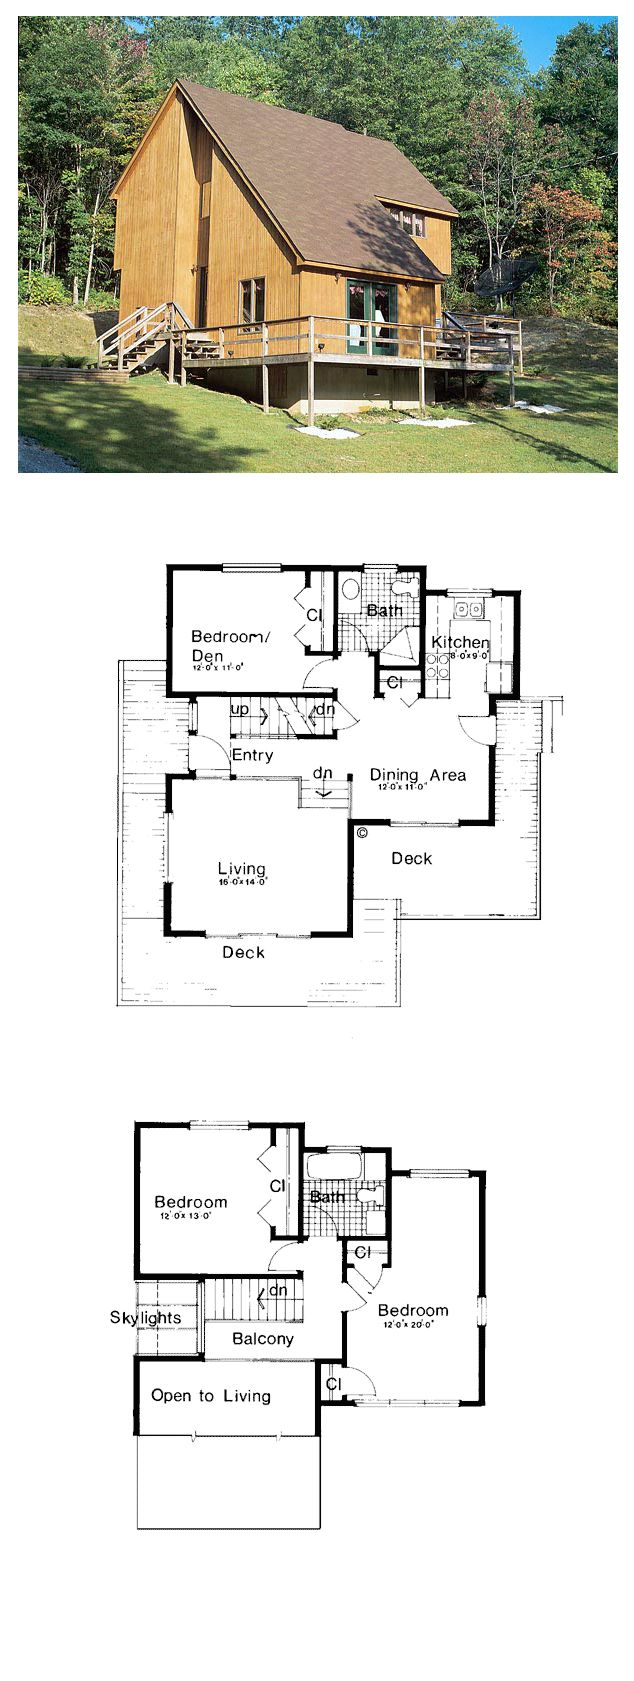 45 Best Saltbox House Plans Images On Pinterest Saltbox Houses Floor Plans And House Floor Plans